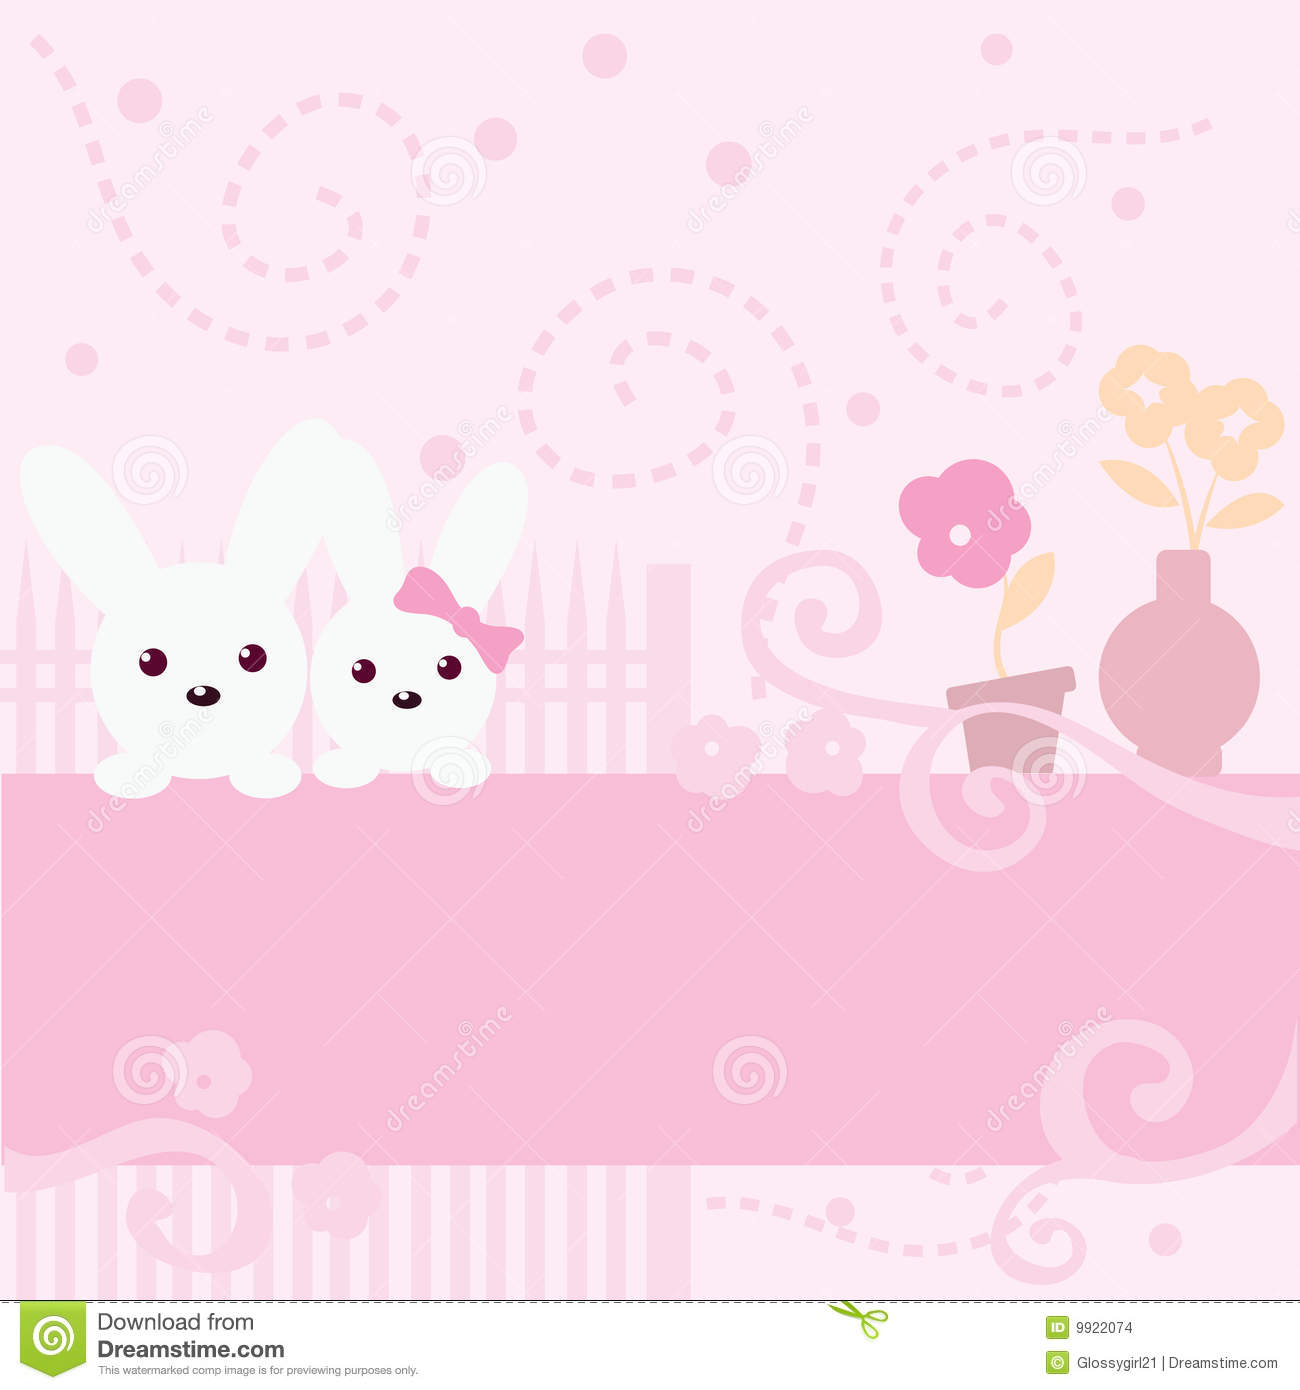 Cute Bunny Pink Background